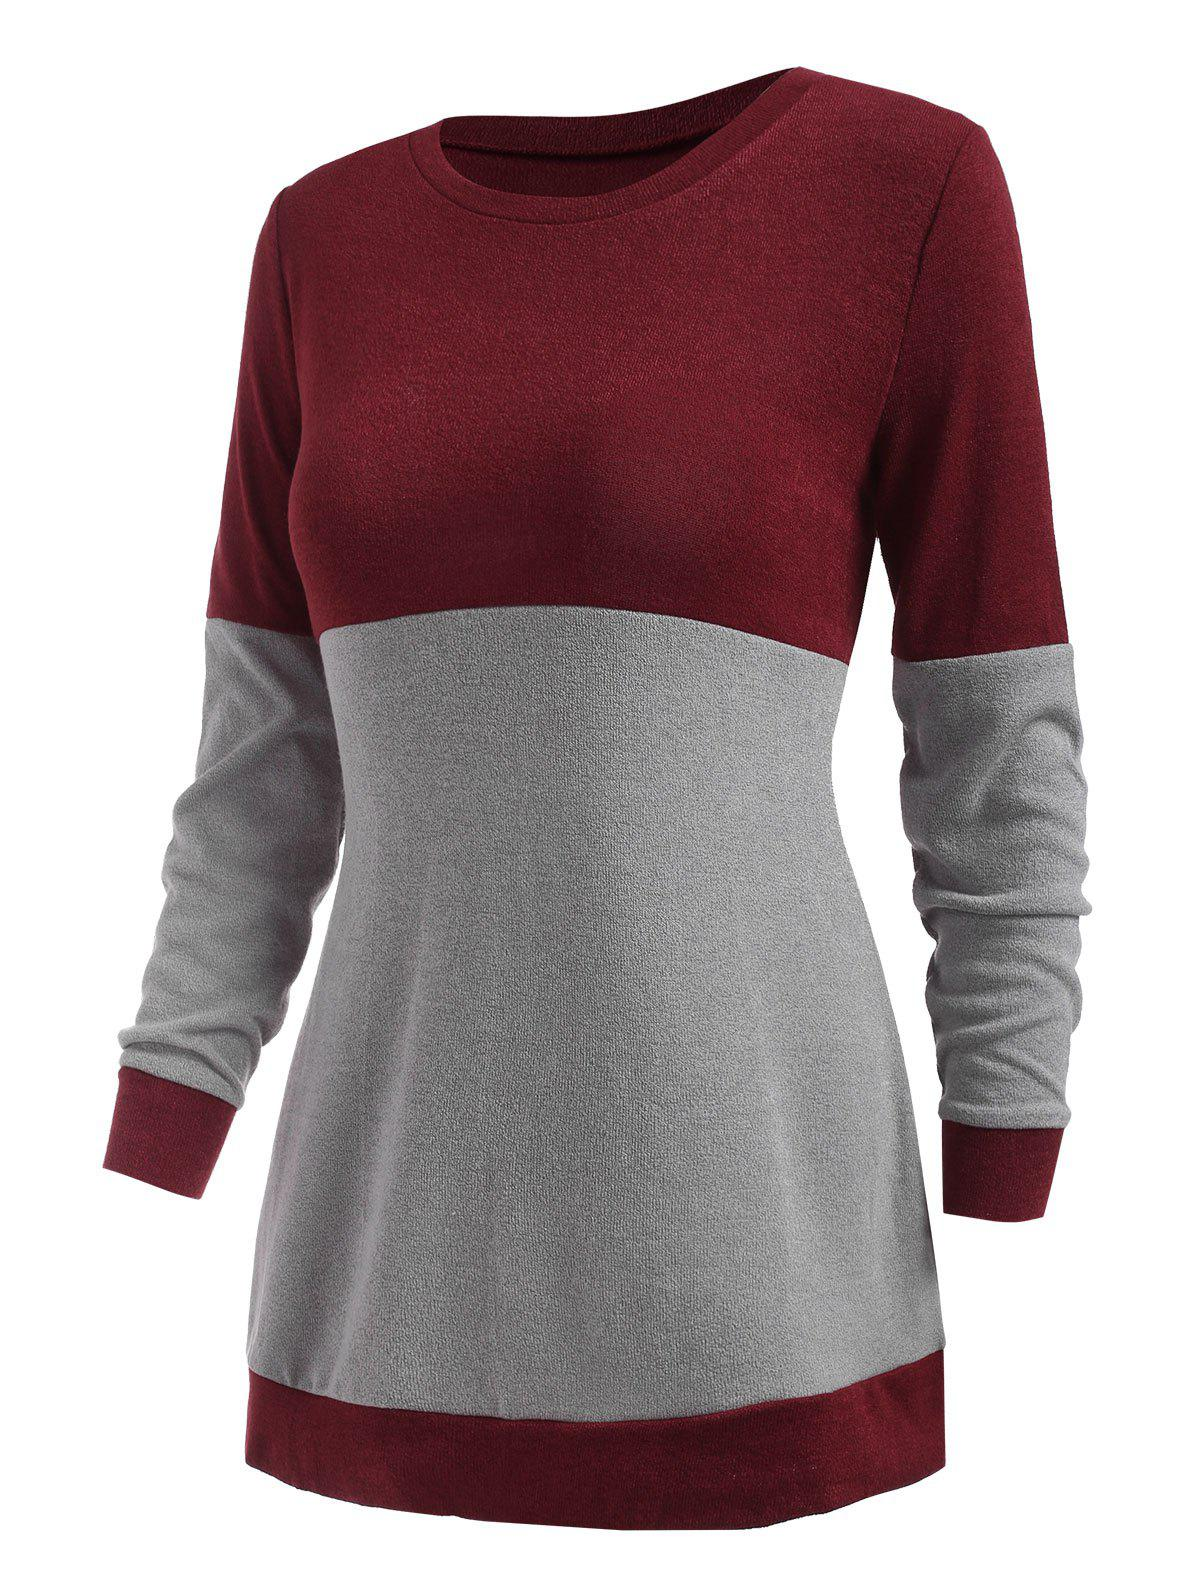 Two Tone Bicolor Tunic Knitwear - RED XL